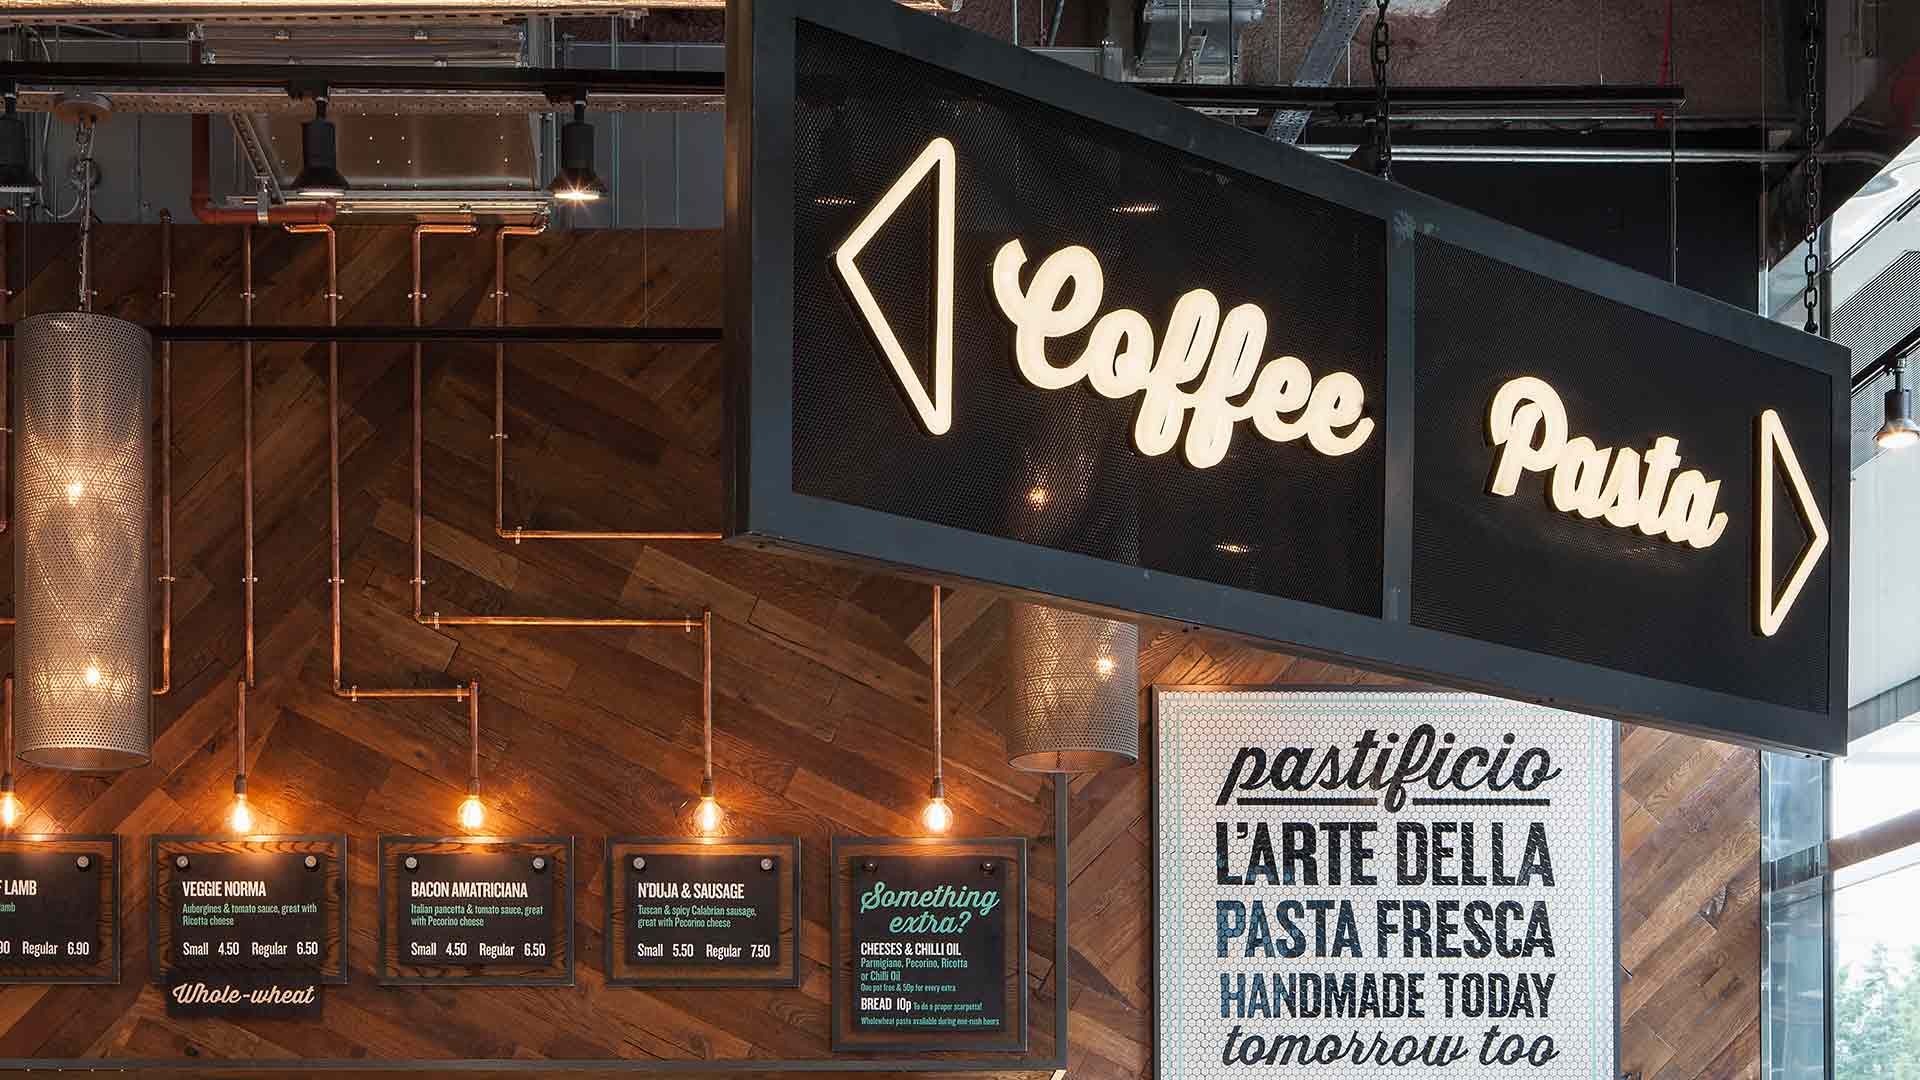 Coffee Pasta Neon Signage Conduit Light Installation Menus Lighting Scheme Nulty